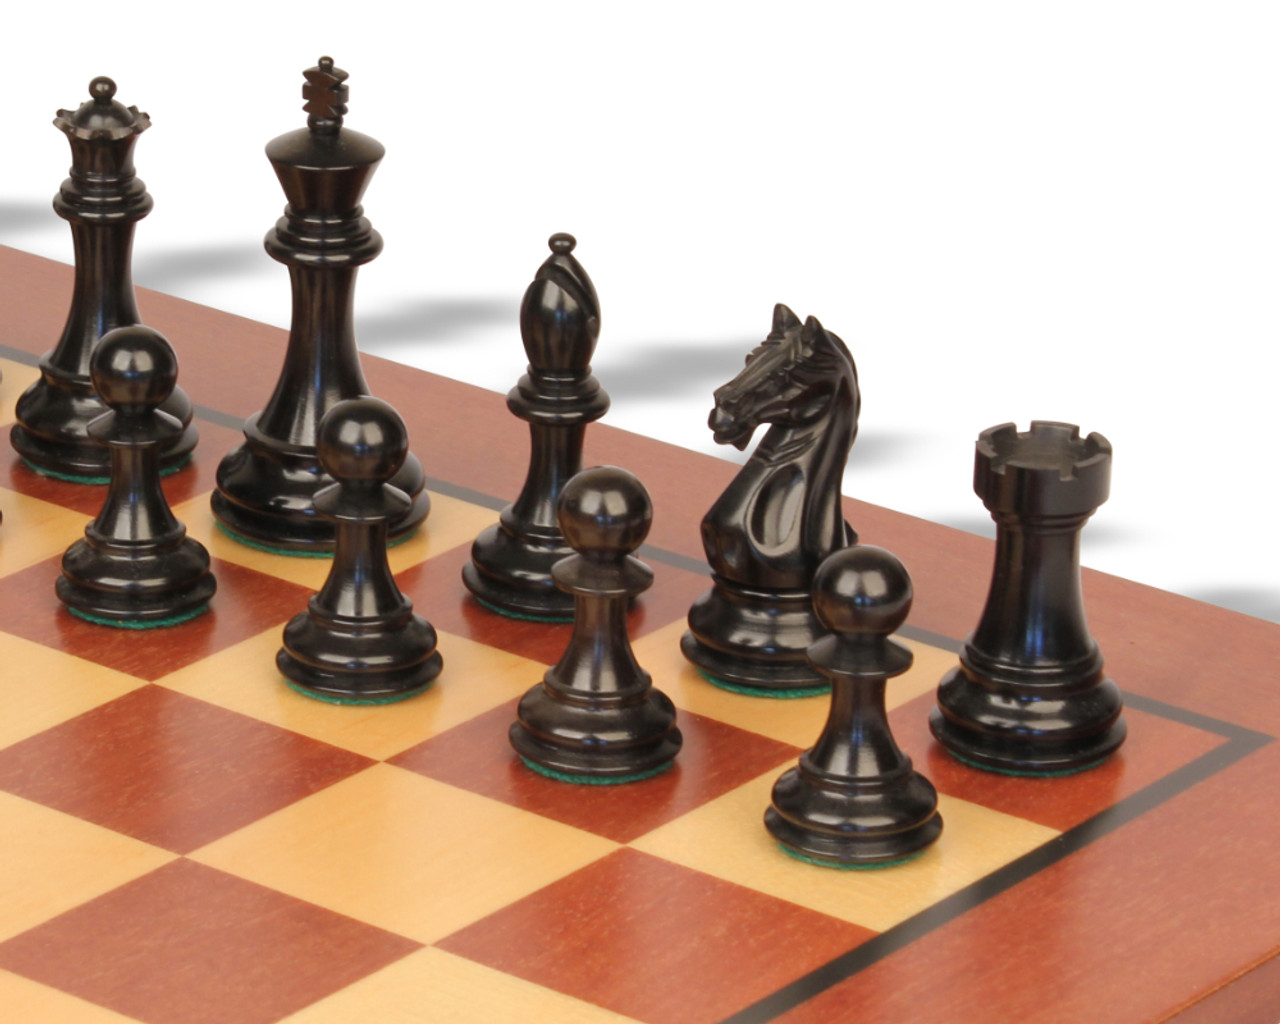 Fierce Knight Staunton Chess Set Ebonized Boxwood Pieces With Classic Mahogany Chess Board 4 King